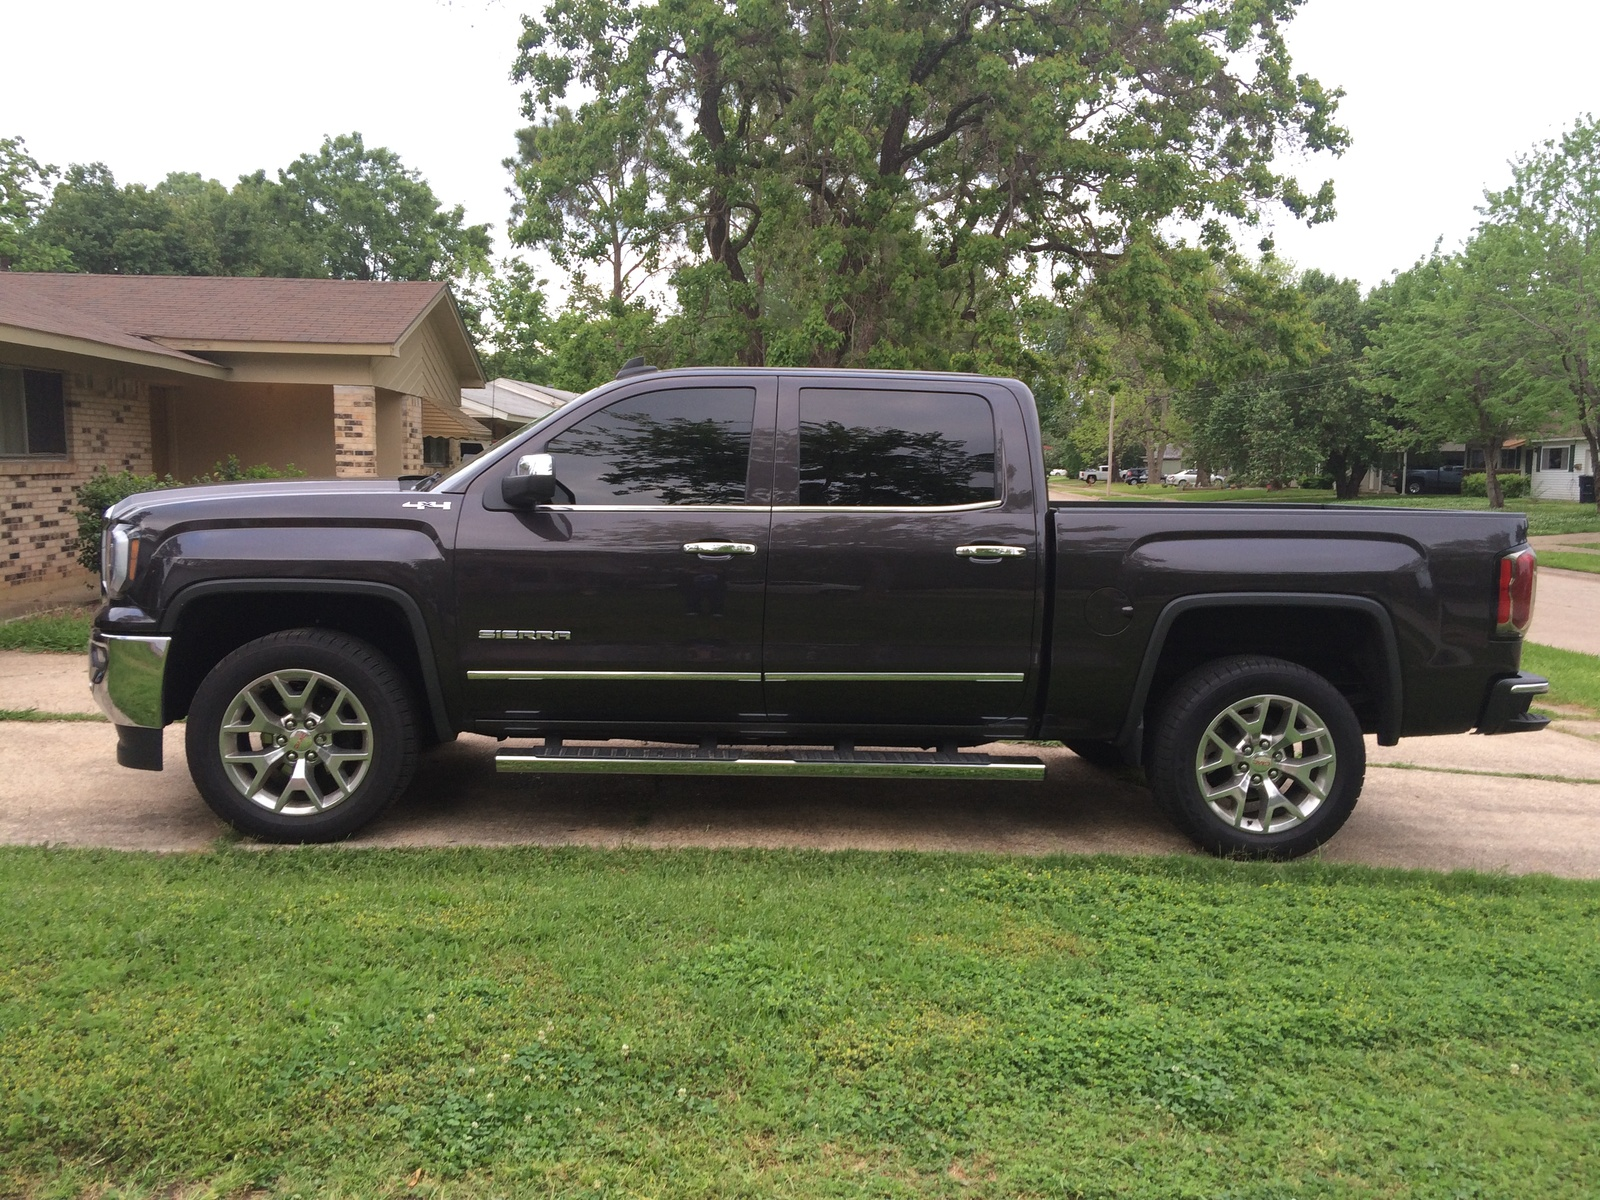 2015 / 2016 GMC Sierra 1500 for Sale in your area - CarGurus